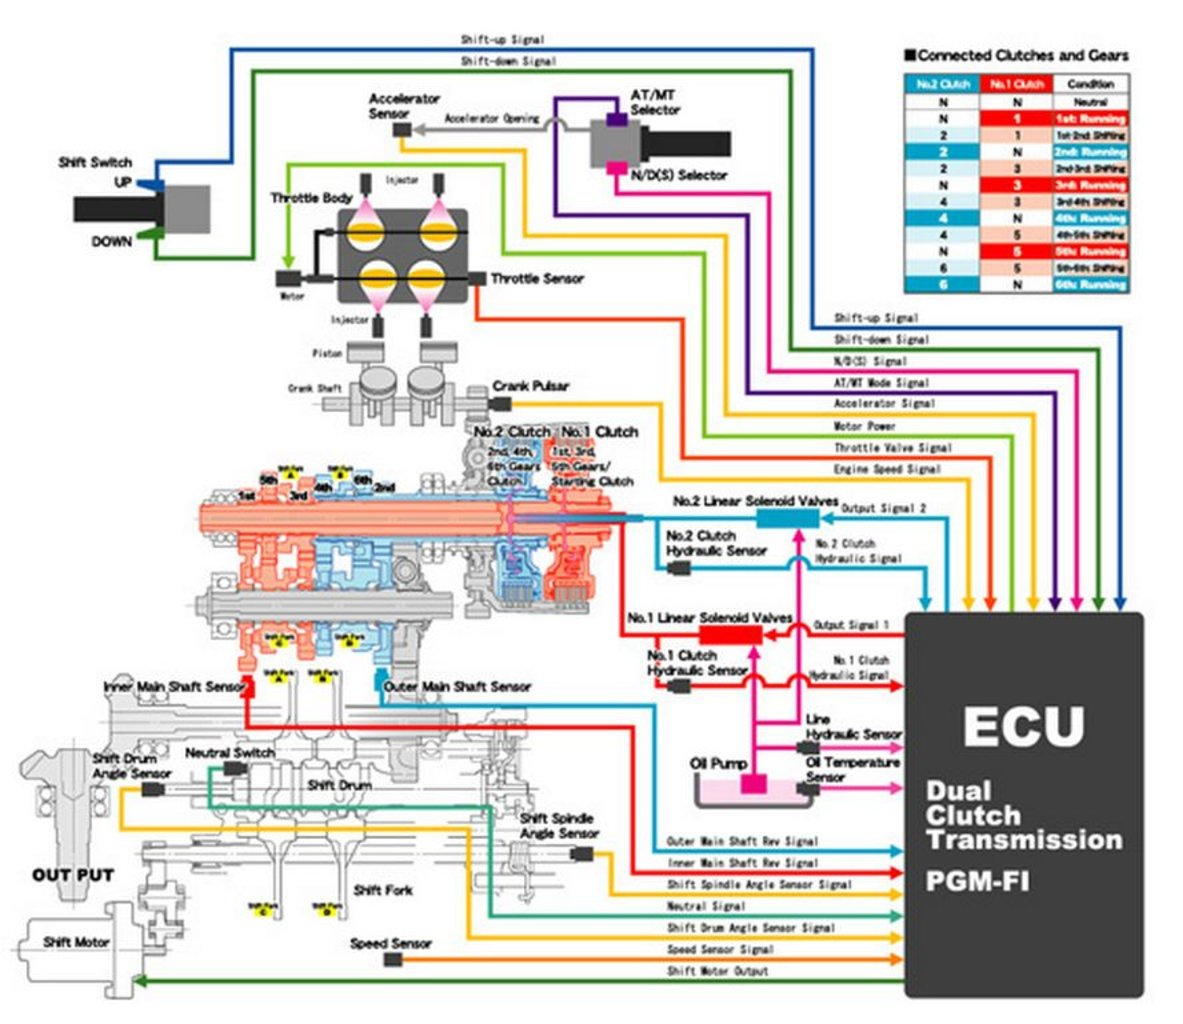 Wiring diagram honda mega pro love wiring diagram ideas ac wiring schematic how to an electrical diagram best ideas asfbconference2016 Image collections